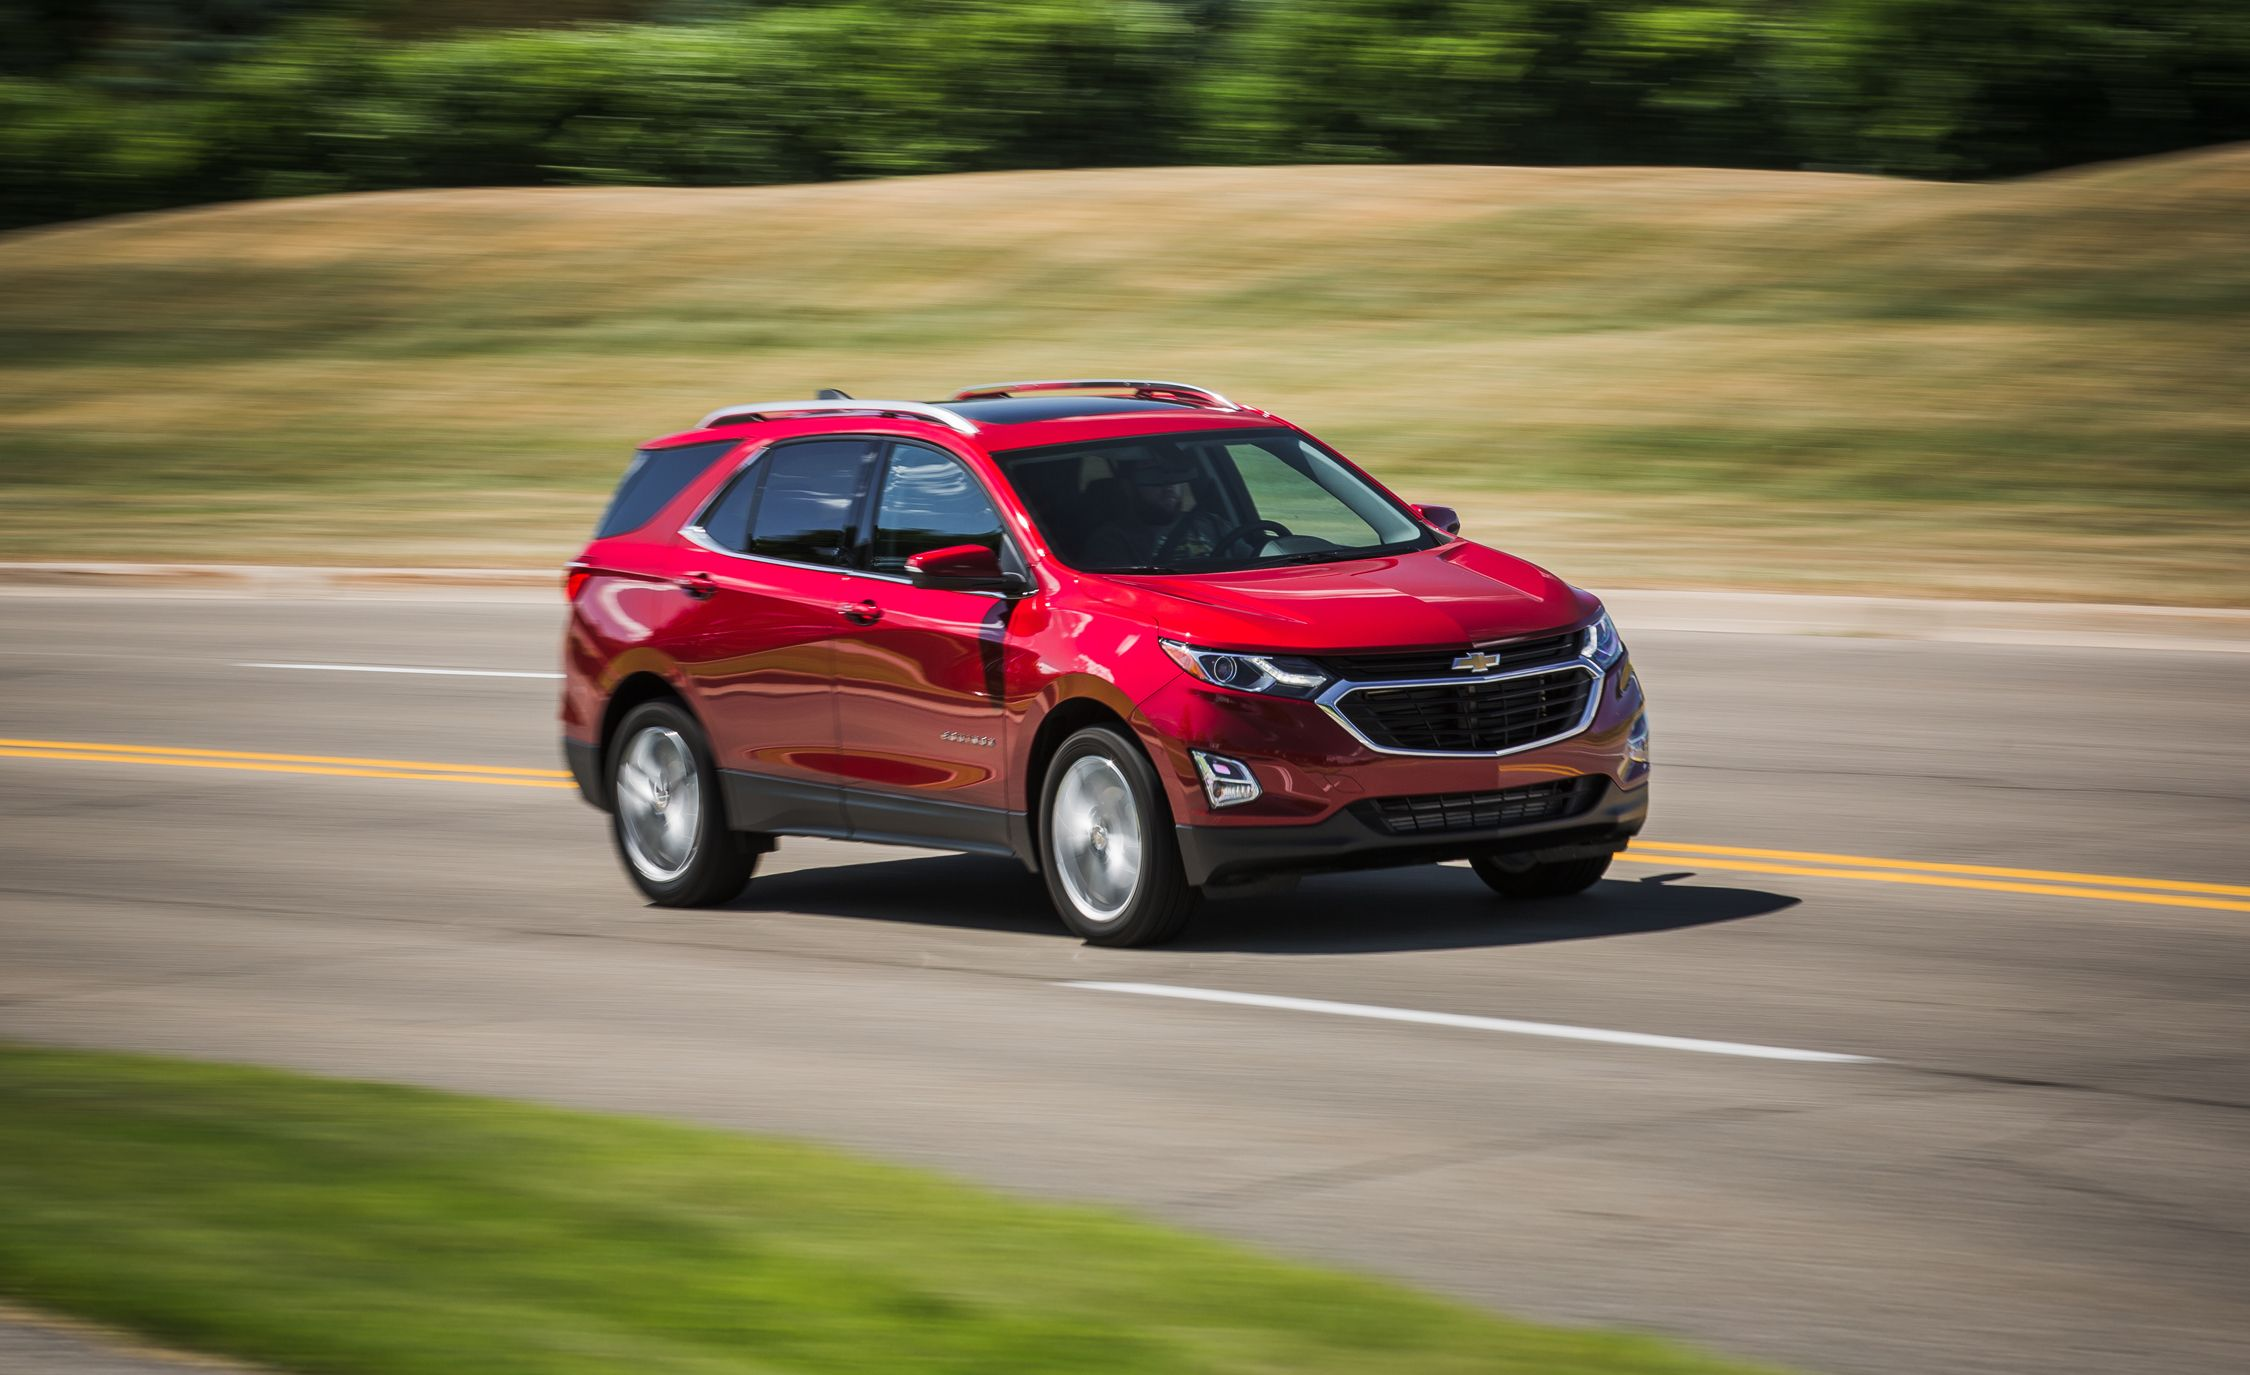 Chevy Equinox 3 4 Liter Engine Diagram Real Wiring Chevrolet 2018 2 0t First Drive Review Car And Driver Rh Caranddriver Com 34